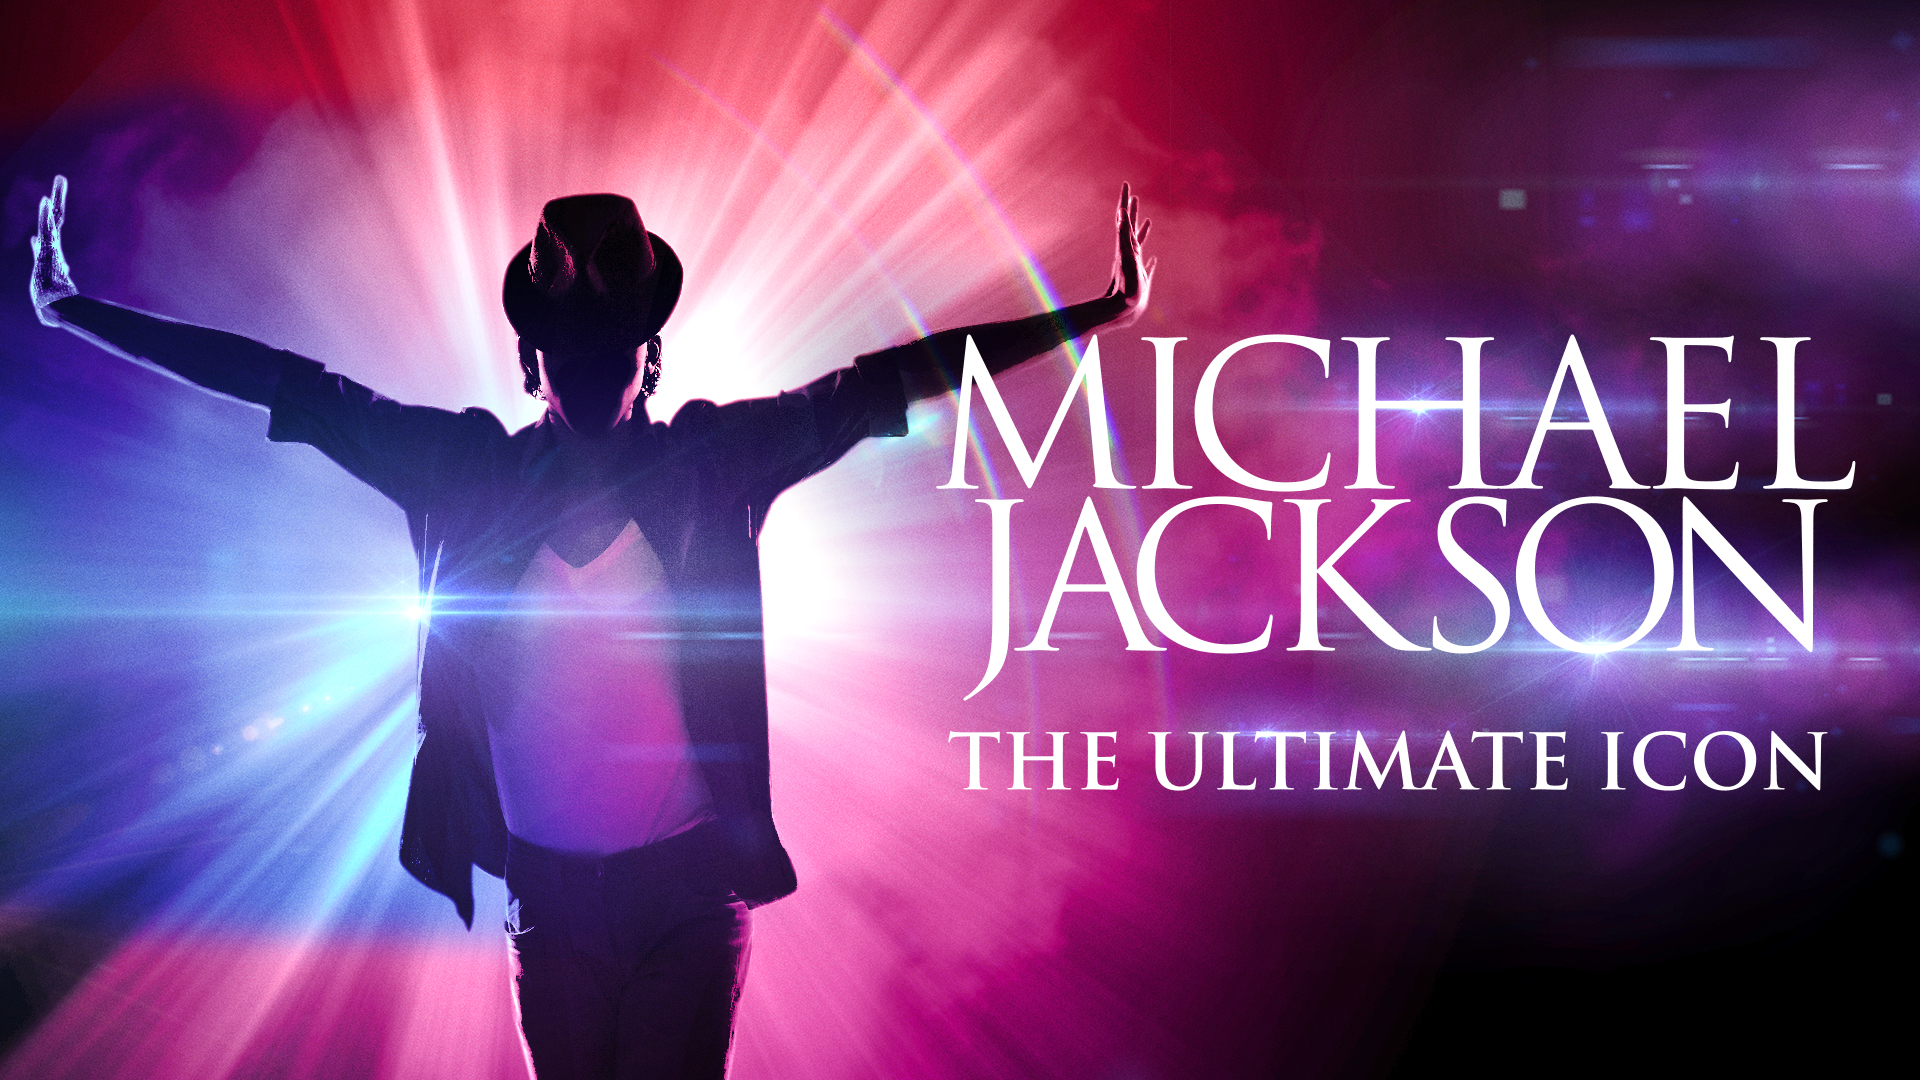 Michael Jackson: The Ultimate Icon